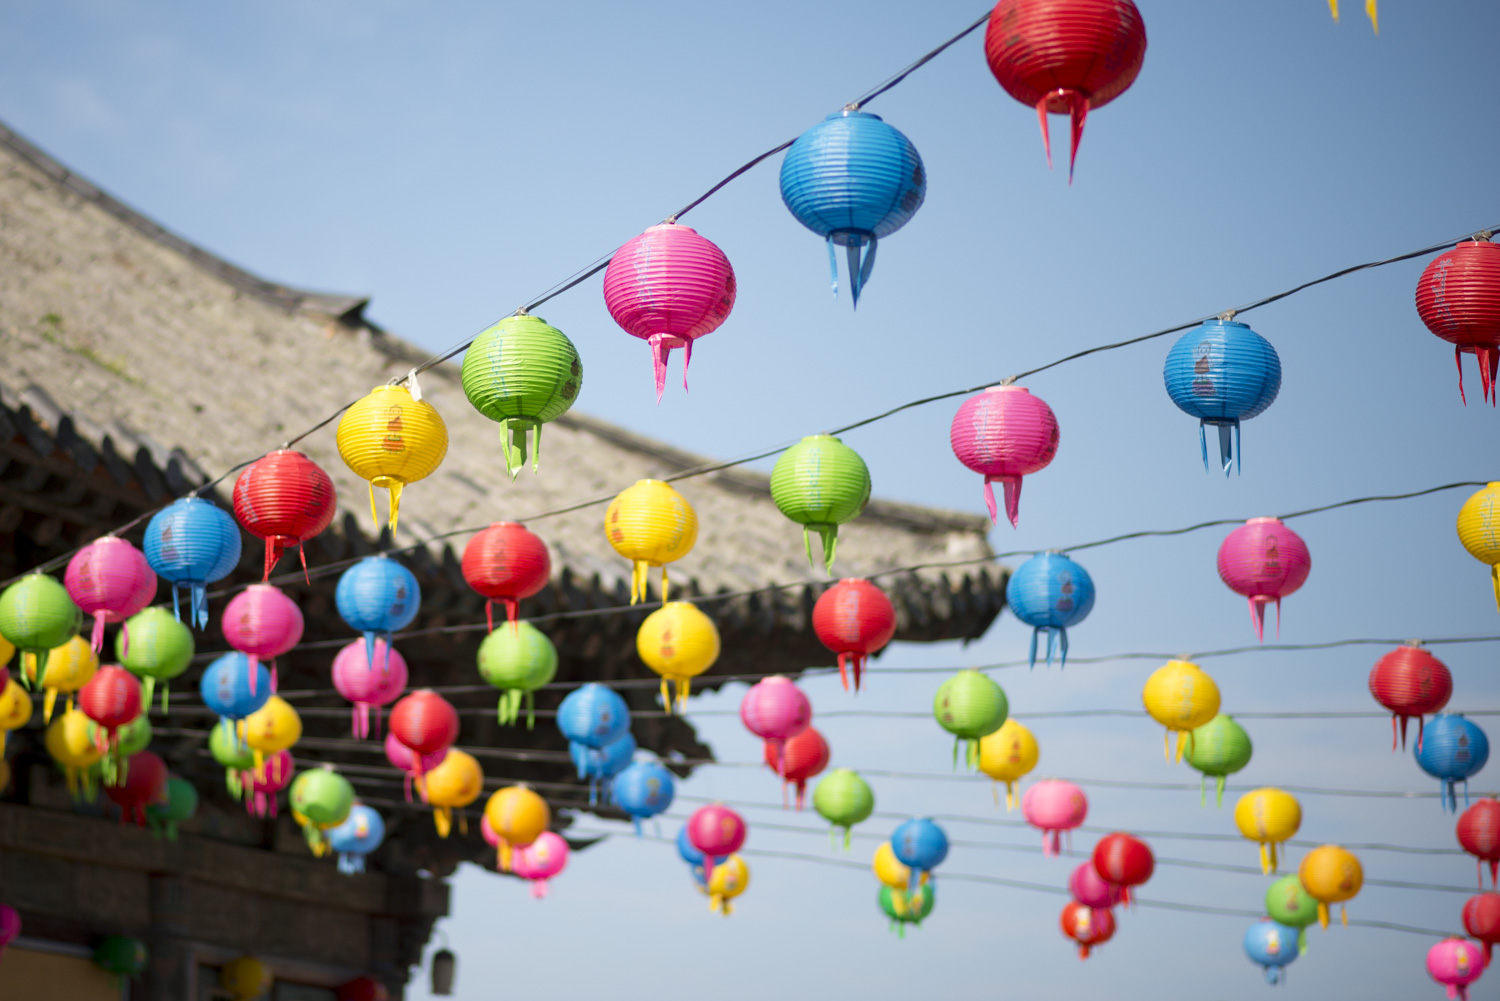 Lanterns hang at Bulguksa Temple in honor of Buddha's birthday which is celebrated every year at the end of May.